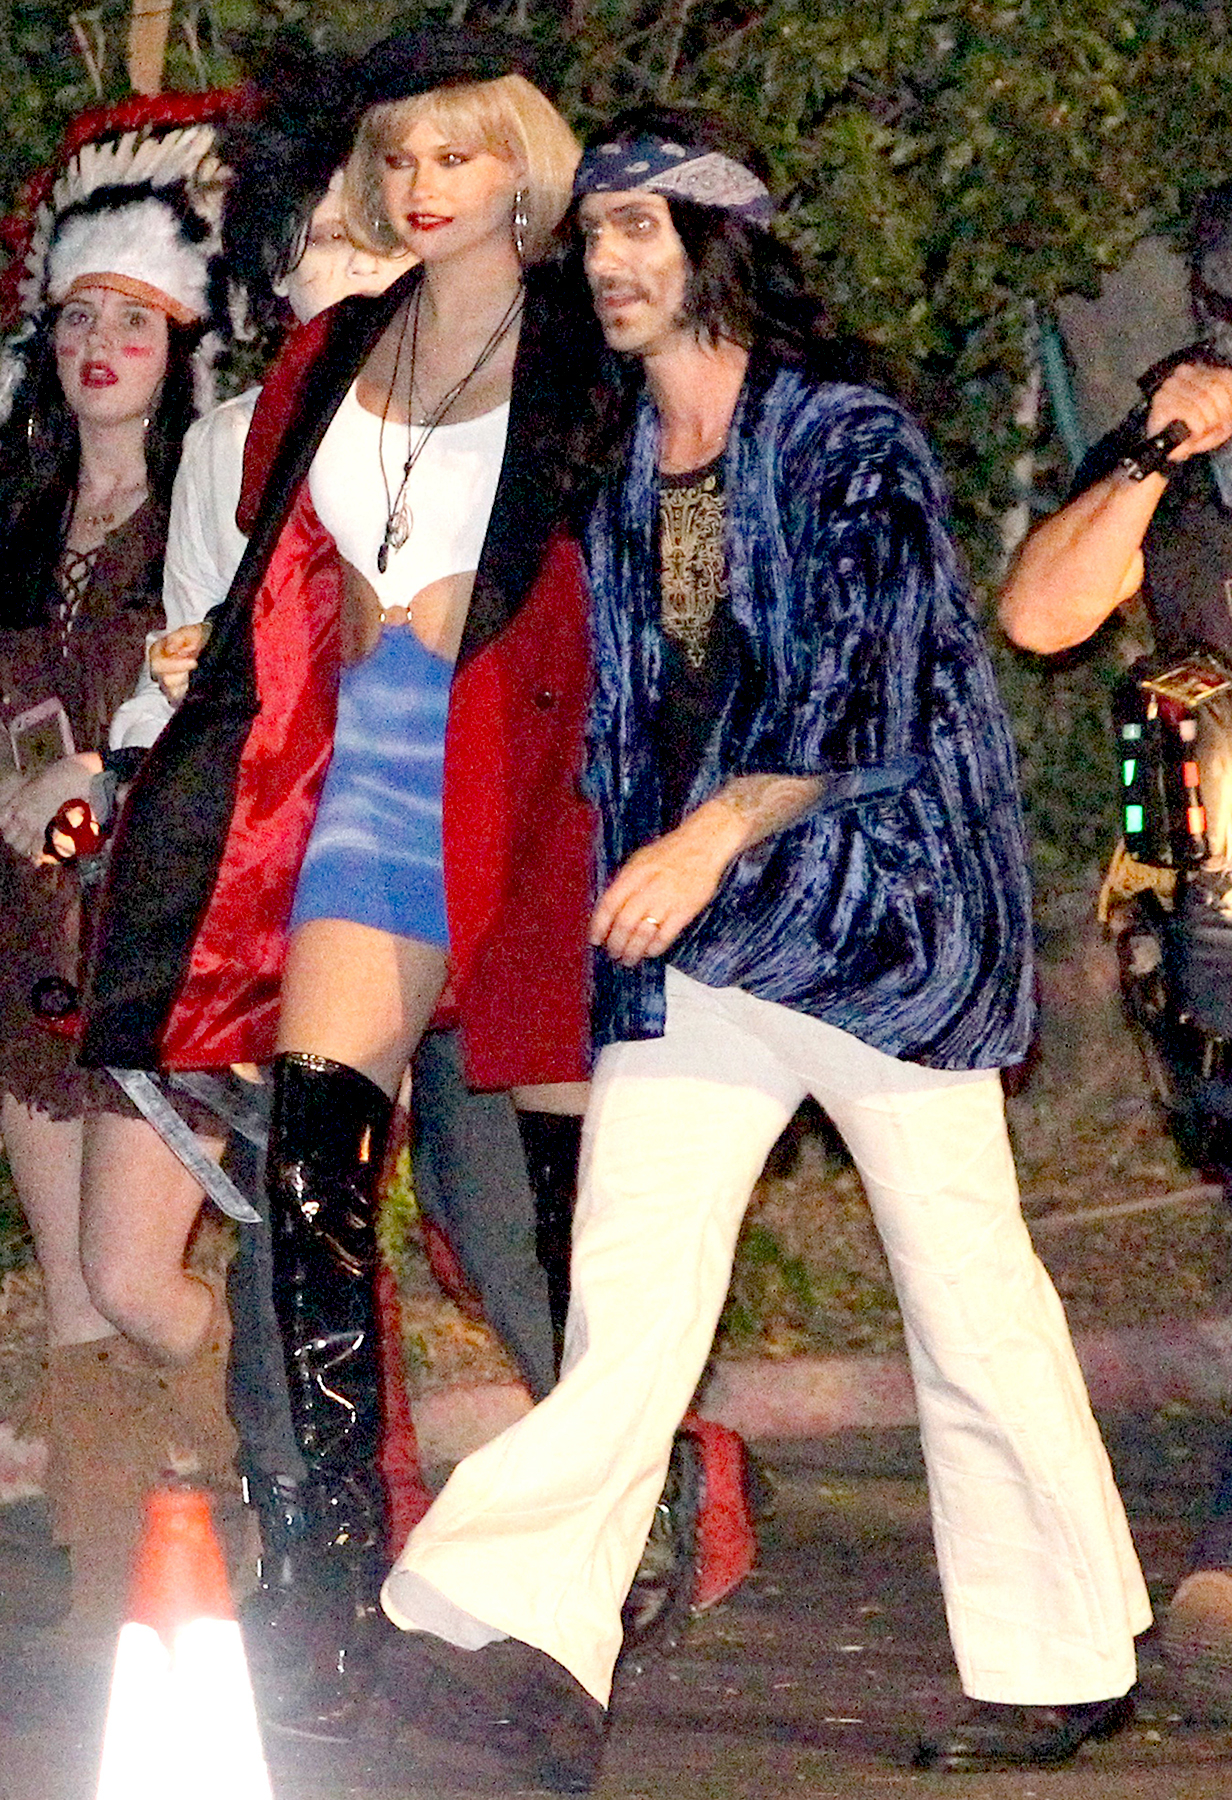 adam levine and behati prinsloo arrived at the maroon 5 annual halloween party adam levine dressed